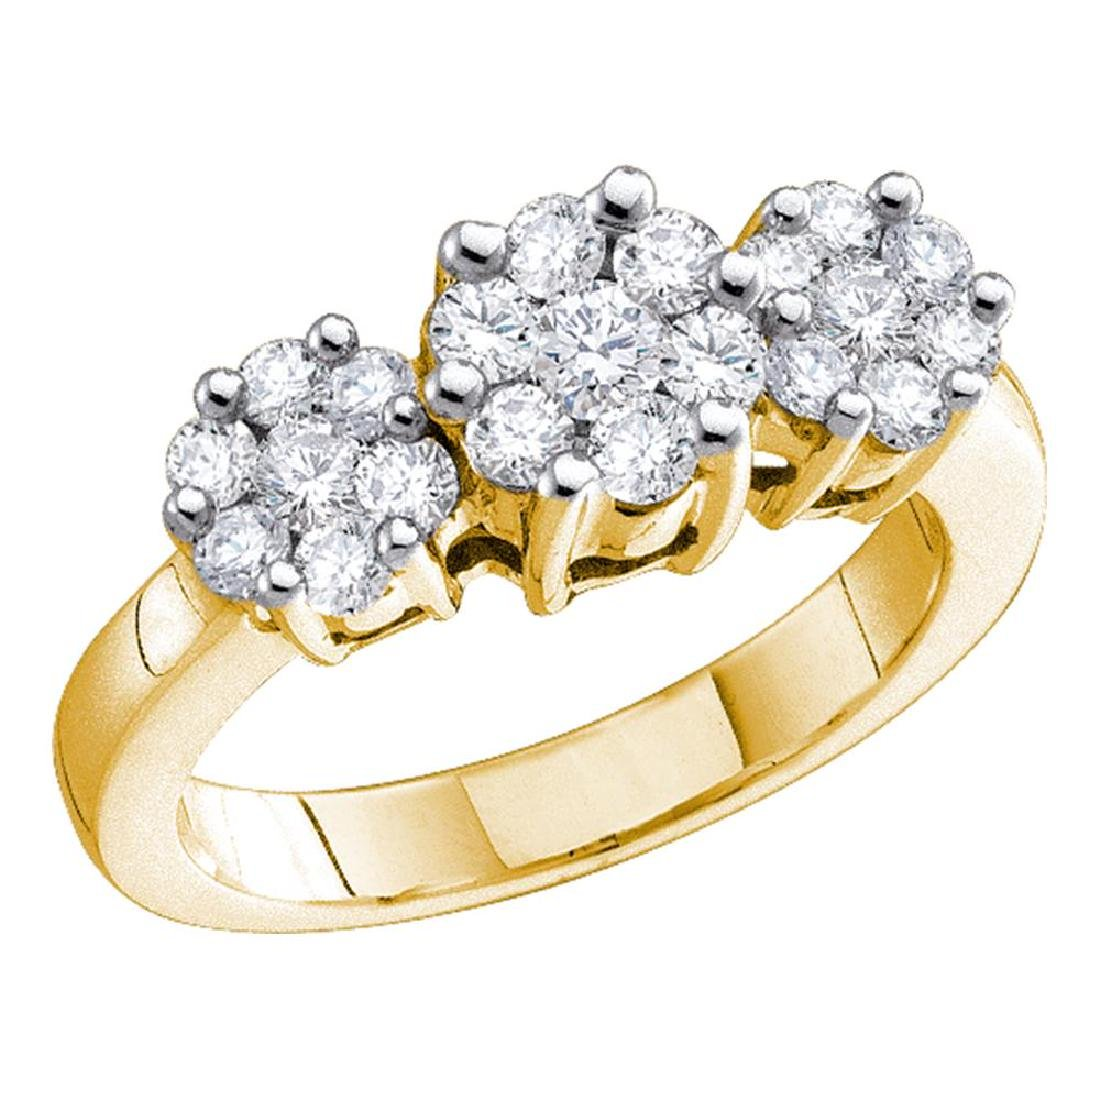 2 CTW Diamond Triple Cluster Ring 14KT Yellow Gold -